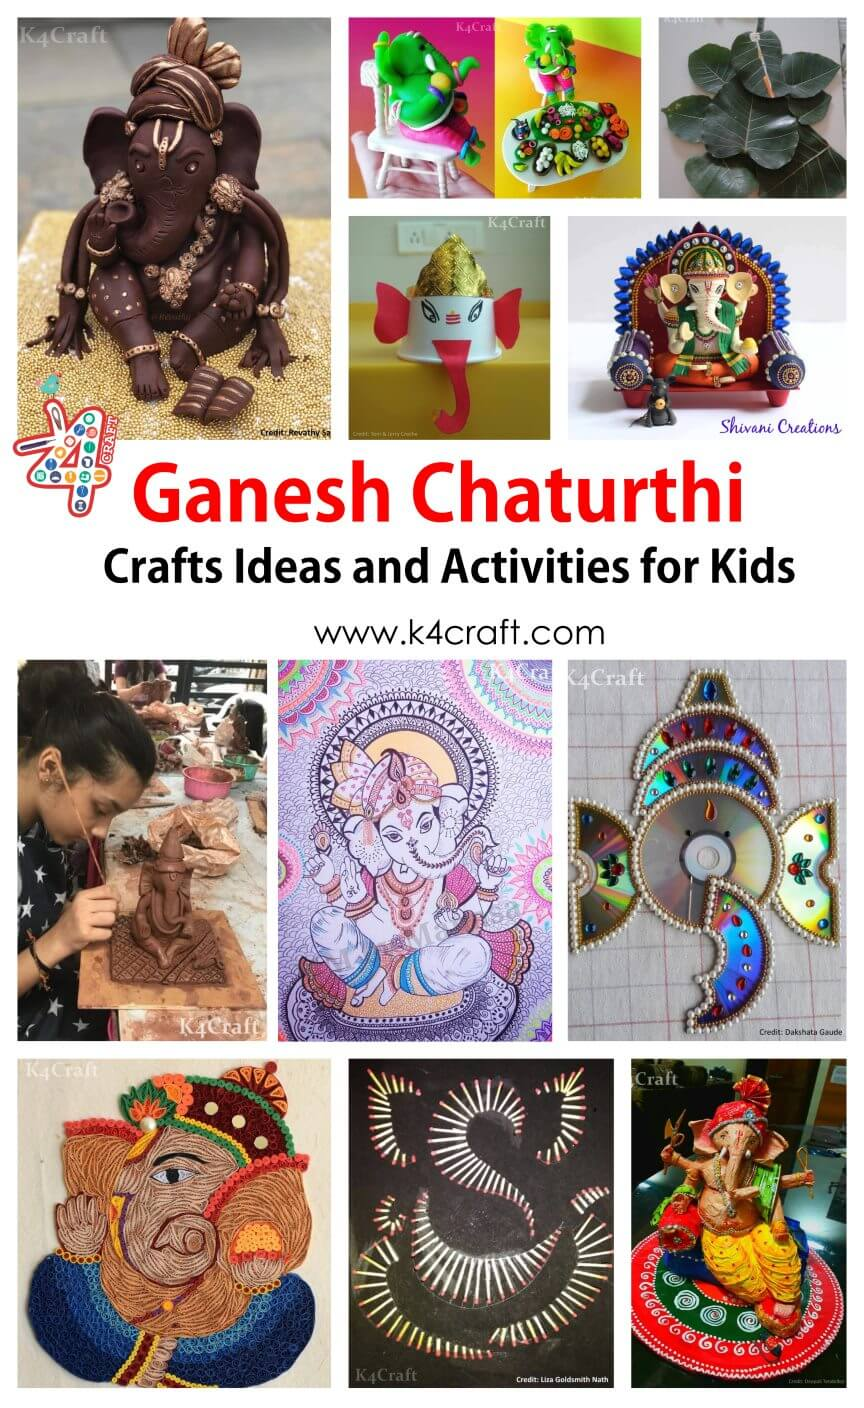 Ganesh Chaturthi Craft Ideas and Activities for Kids